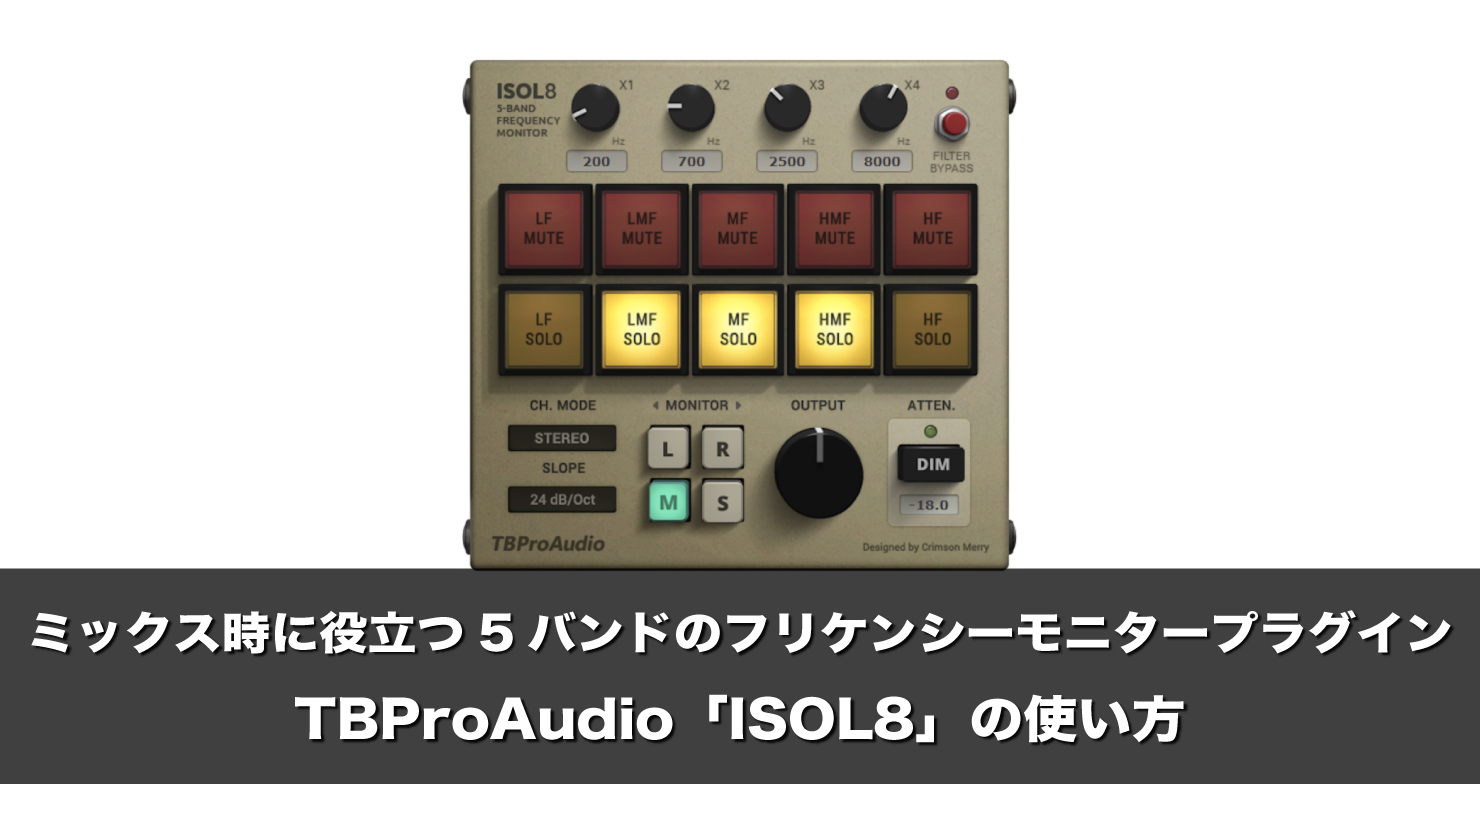 TBProAudio-ISOL8-How-to